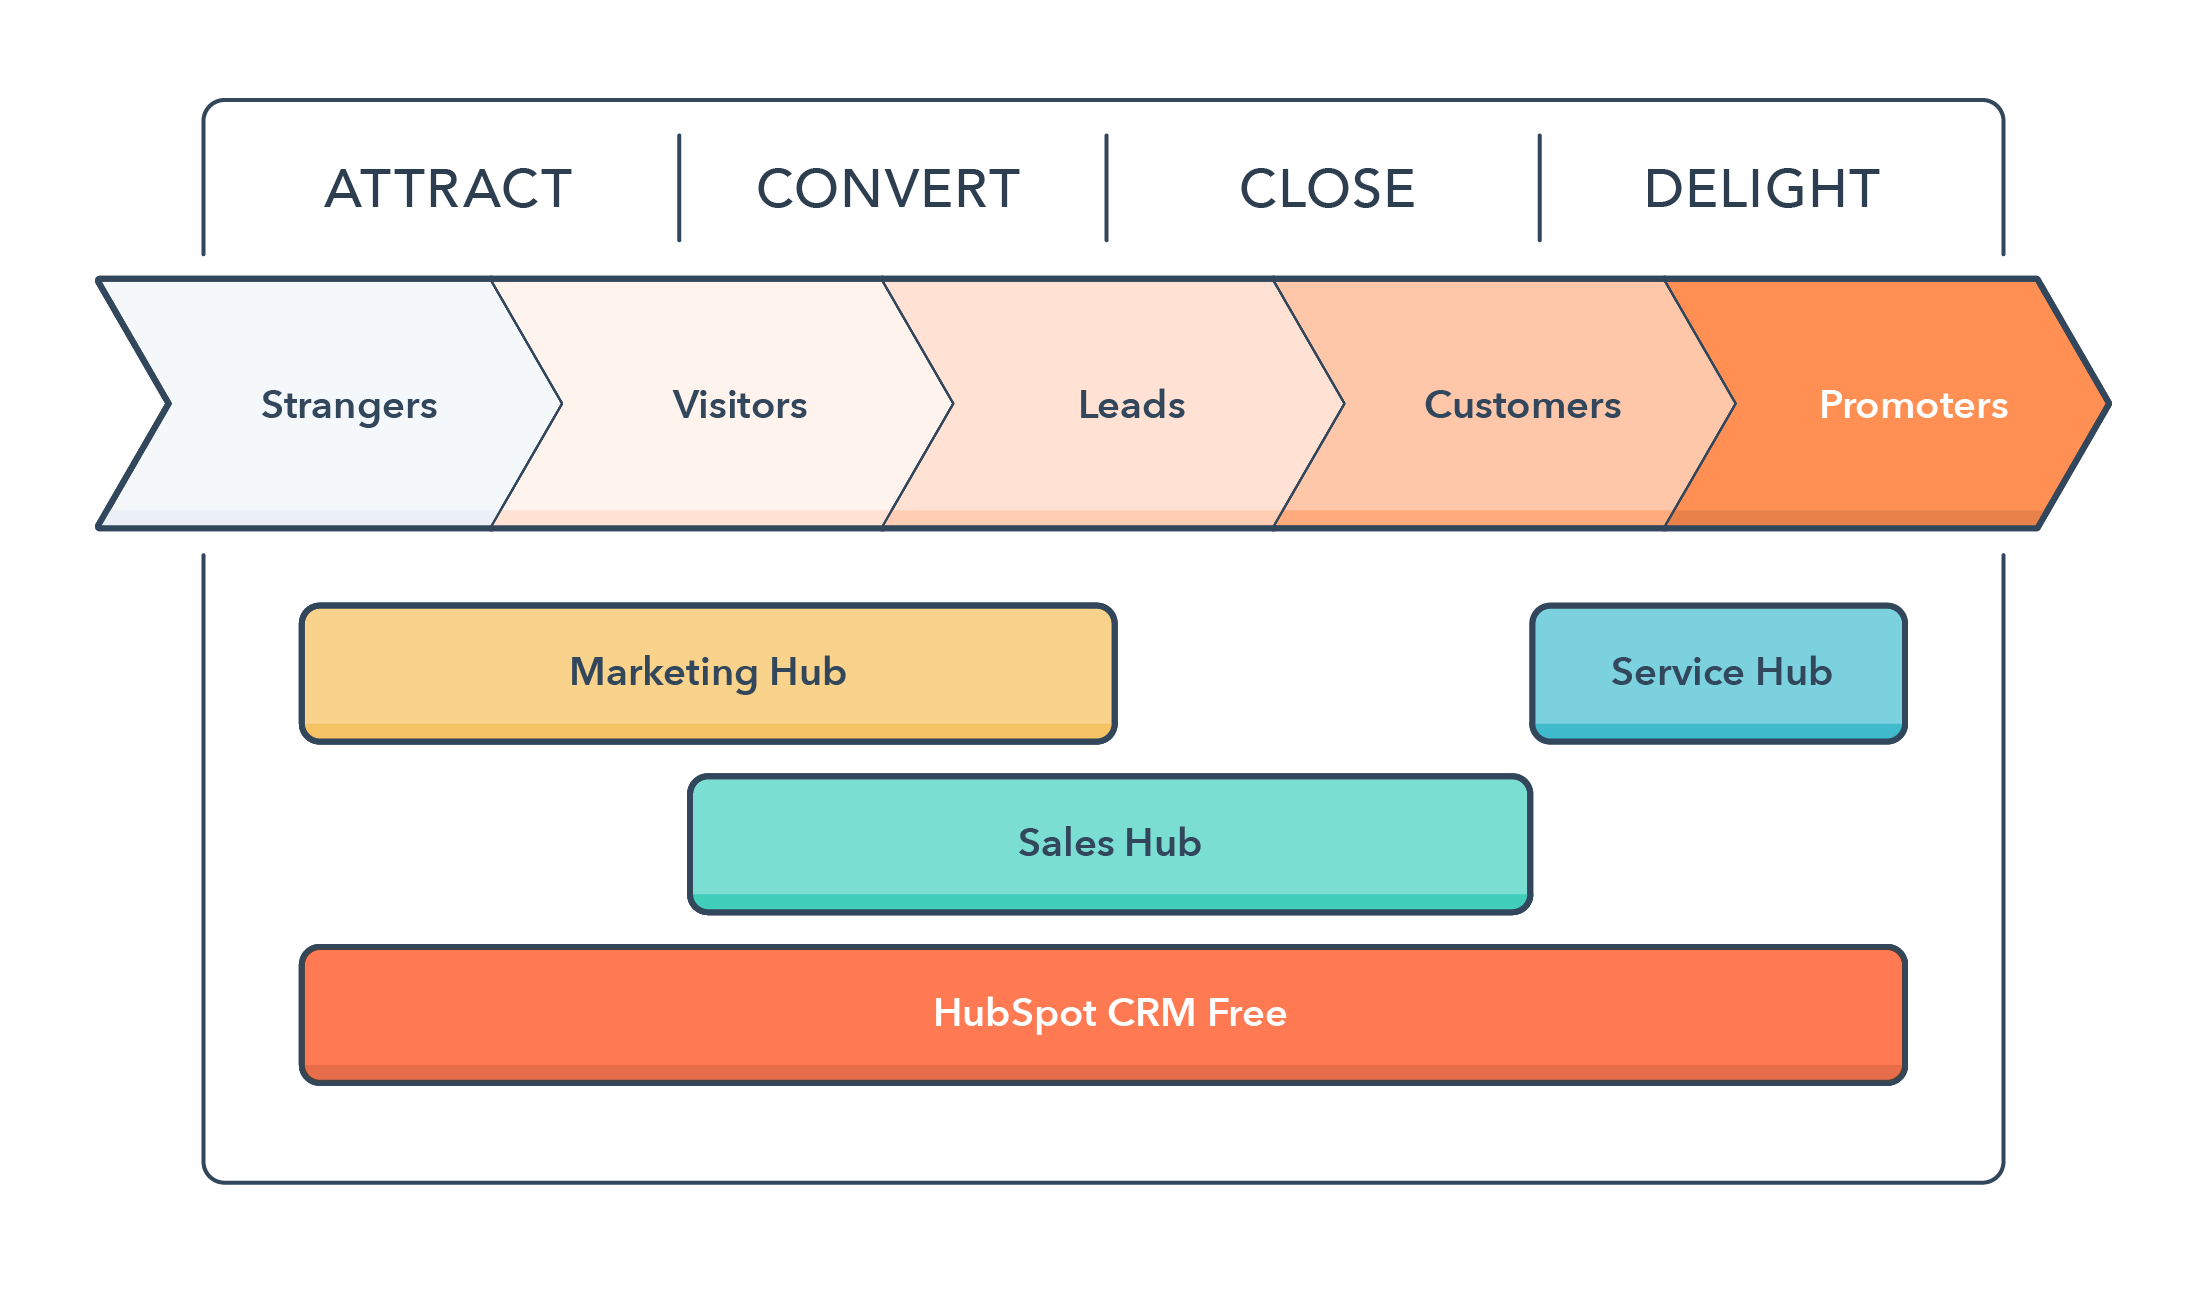 Service Hub added to inbound methodology